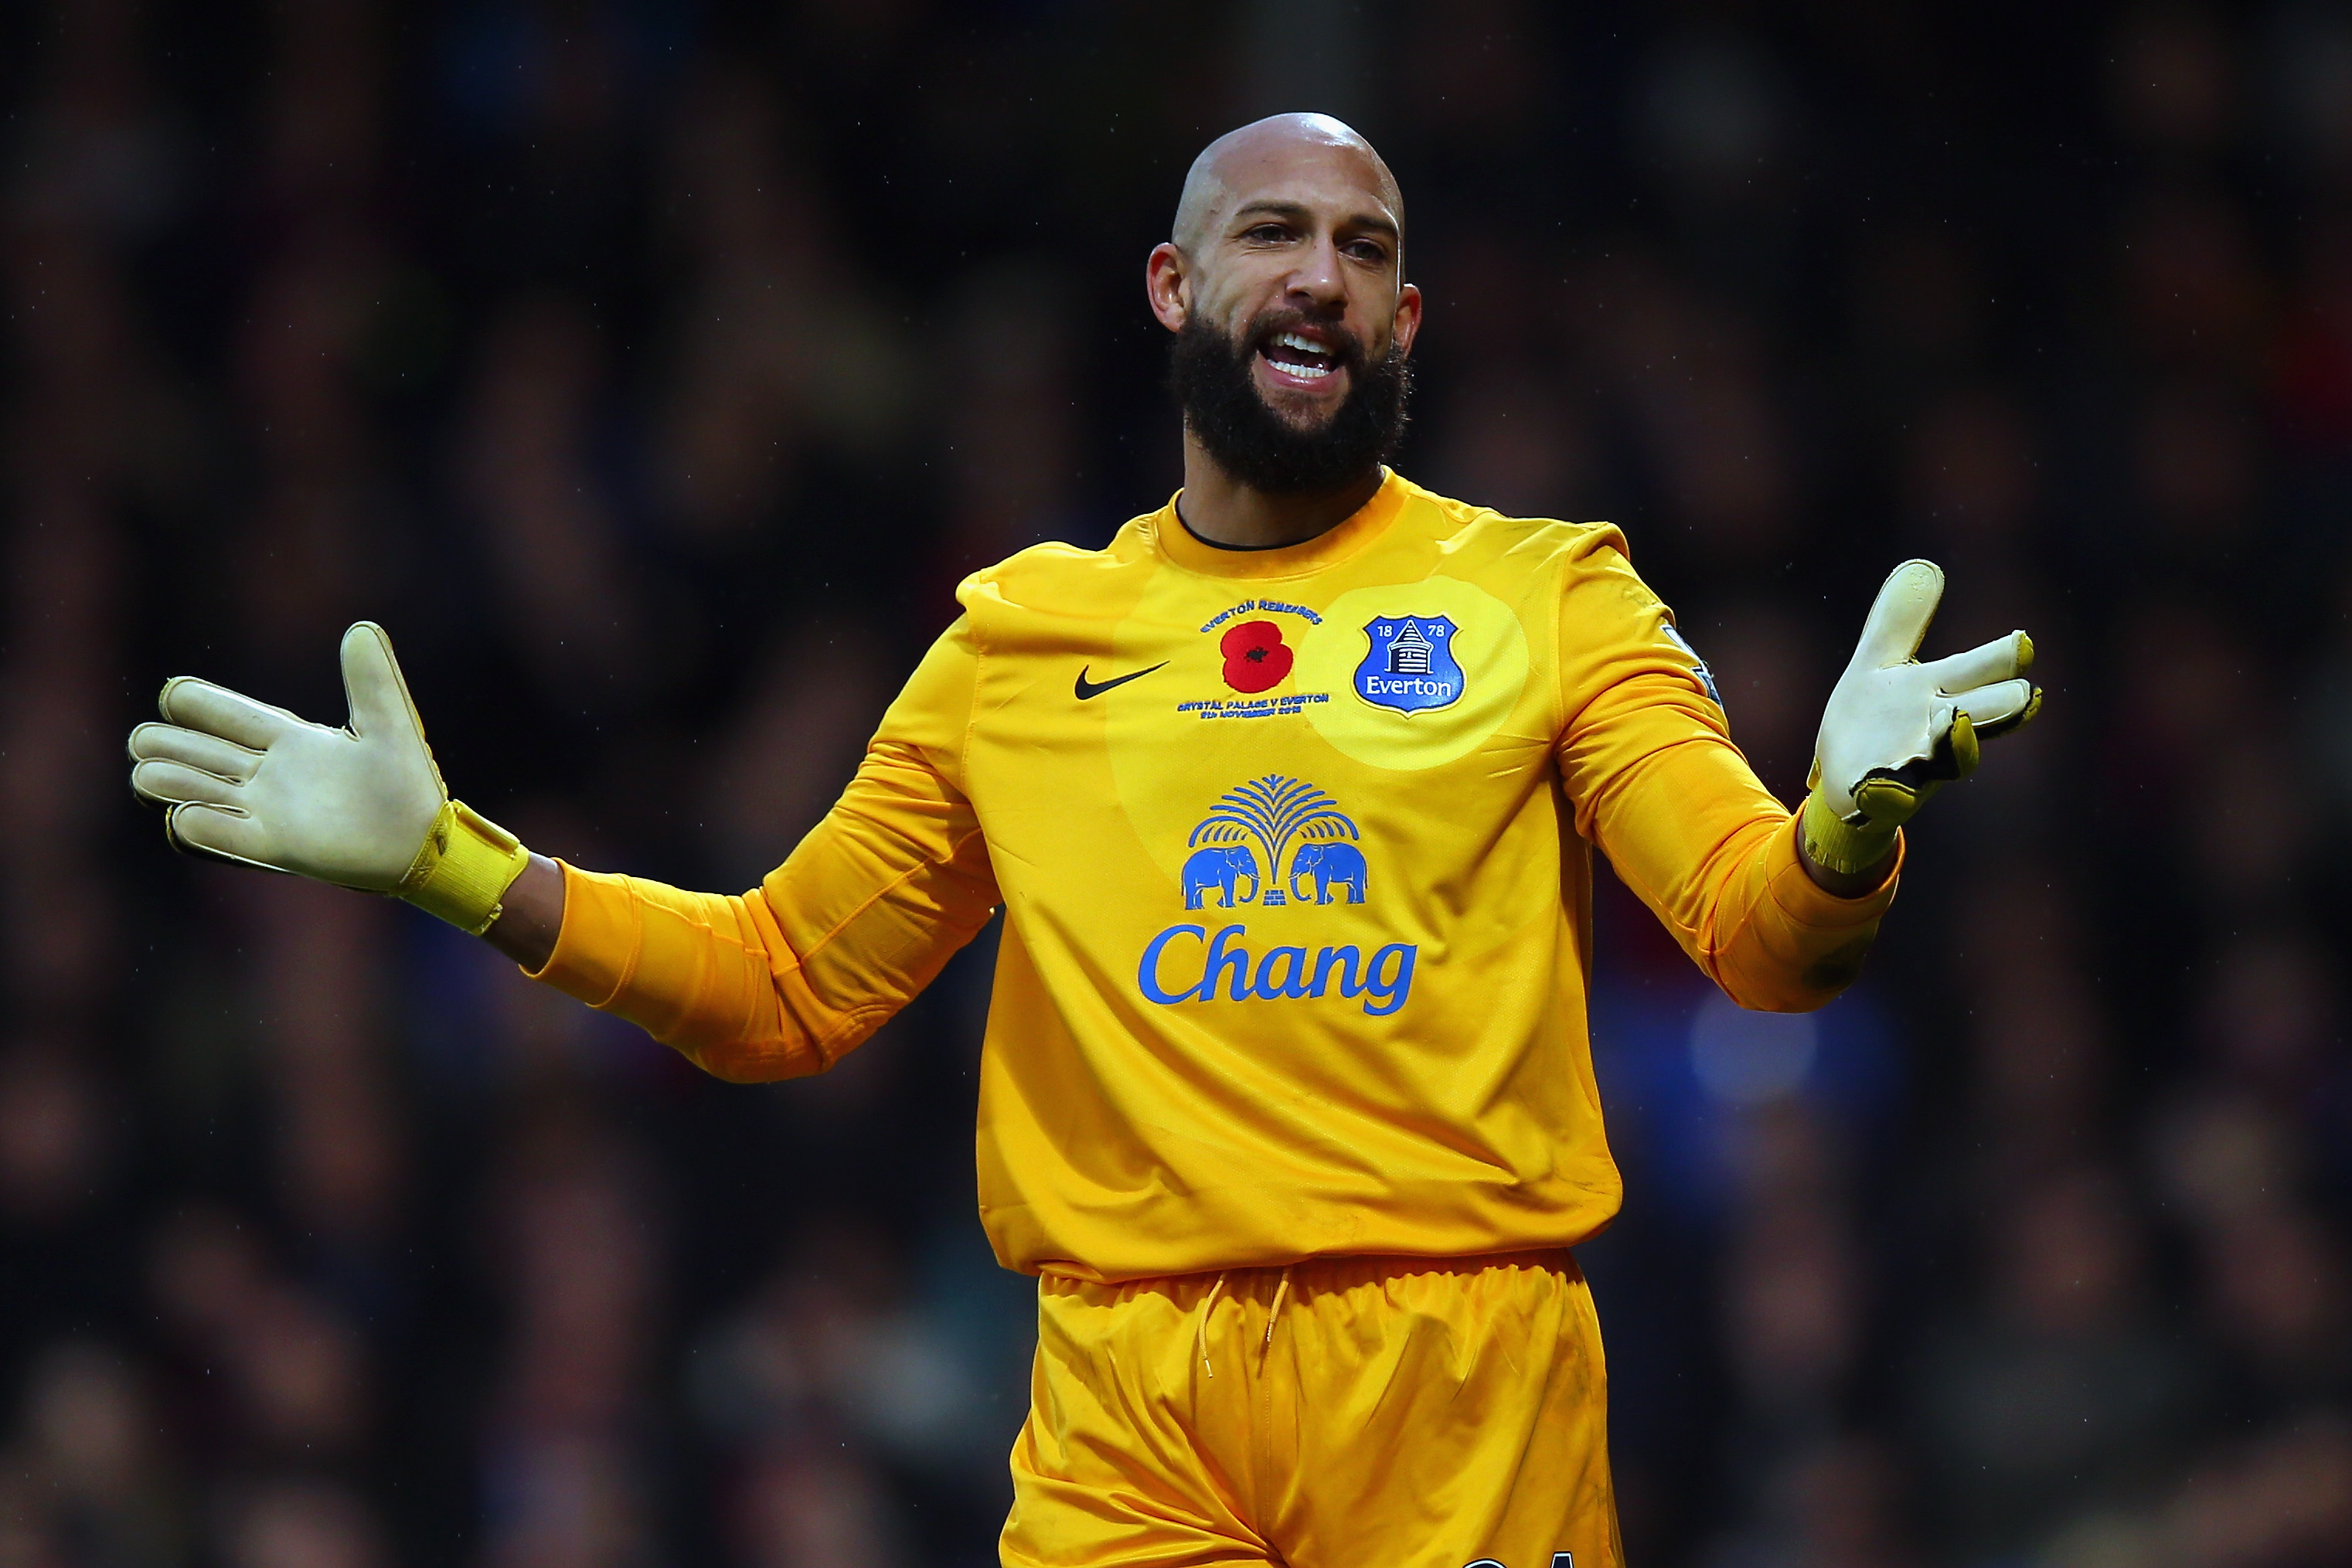 Tim Howard of Everton instructs his team during the Barclays Premier League match between Crystal Palace and Everton at Selhurst Park on November 9, 2013 in London, England.